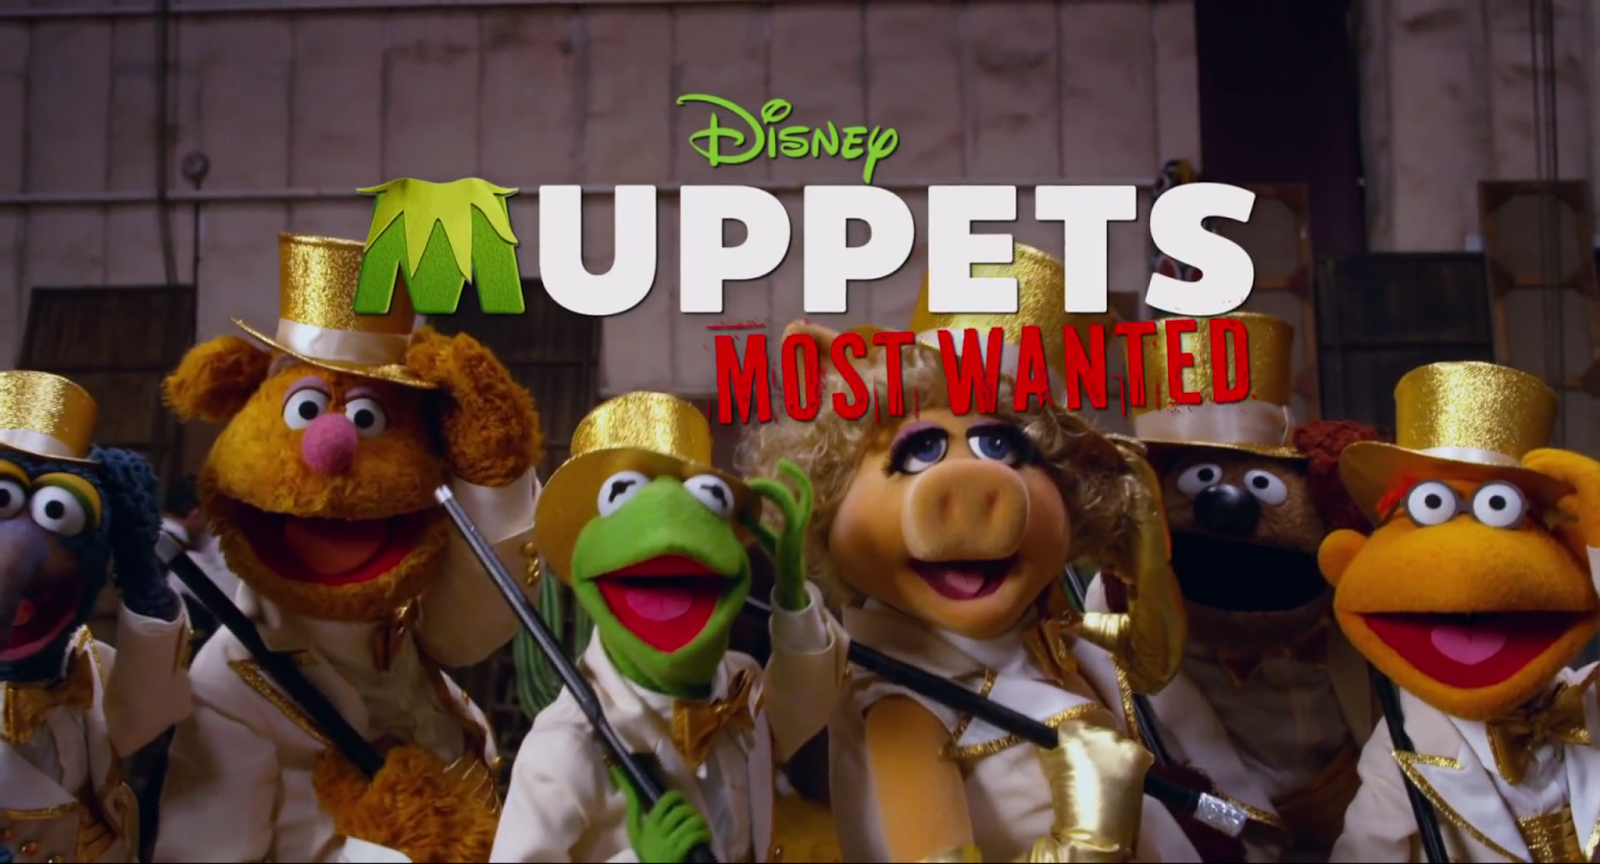 MUPPETS MOST WANTED Film Review   The Muppet Mindset